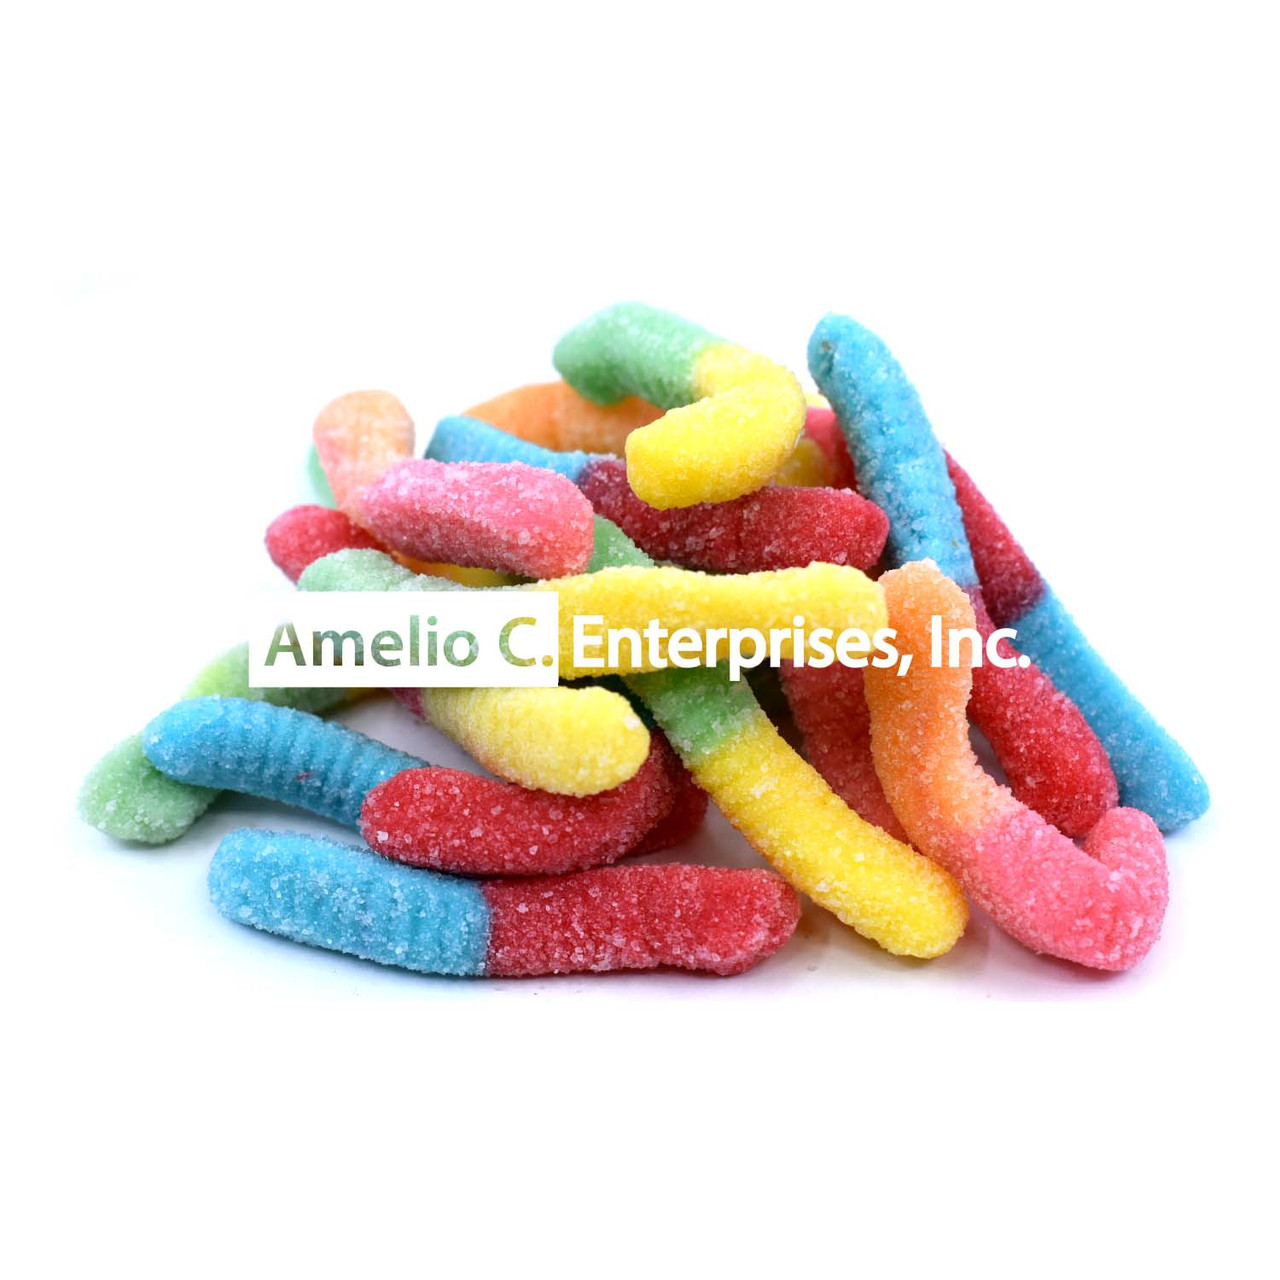 SOUR NEON GUMMI WORMS per LB